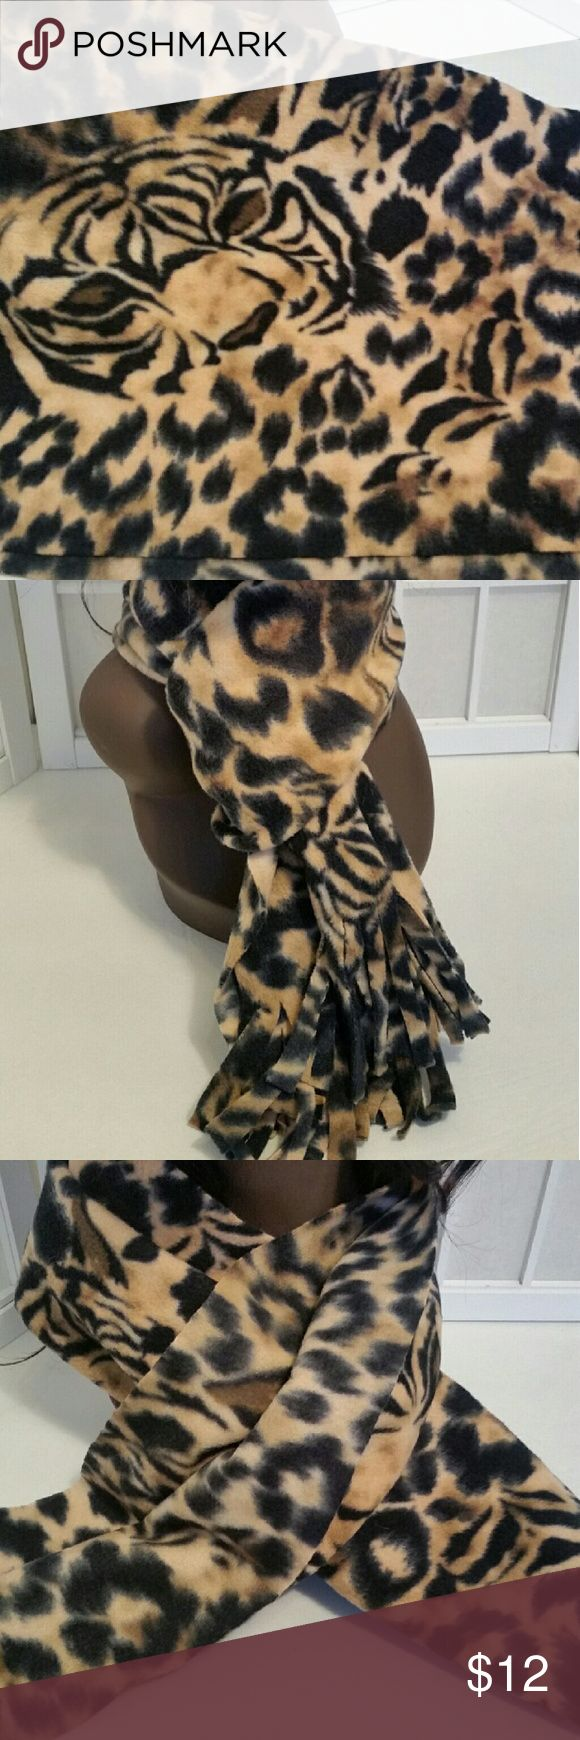 Nwot fringed animal print scarf Nwot fringed animal print scarf   Never worn  Excellent condition no flaws   Measures aprox. 12in.x54in.  No material content tag attached.. but I'm guessing polyester or acrylic 😉   ❣pictures are part of the description  ❣No trades or off site transactions/communications ❣Open to reasonable offers ❣same day shipping Mon-Sat if purchased before 2:30pm central time  ❣4.9 rating  ❣Please ask questions all questions BEFORE buying. ❣PLEASE do not rate me on how…